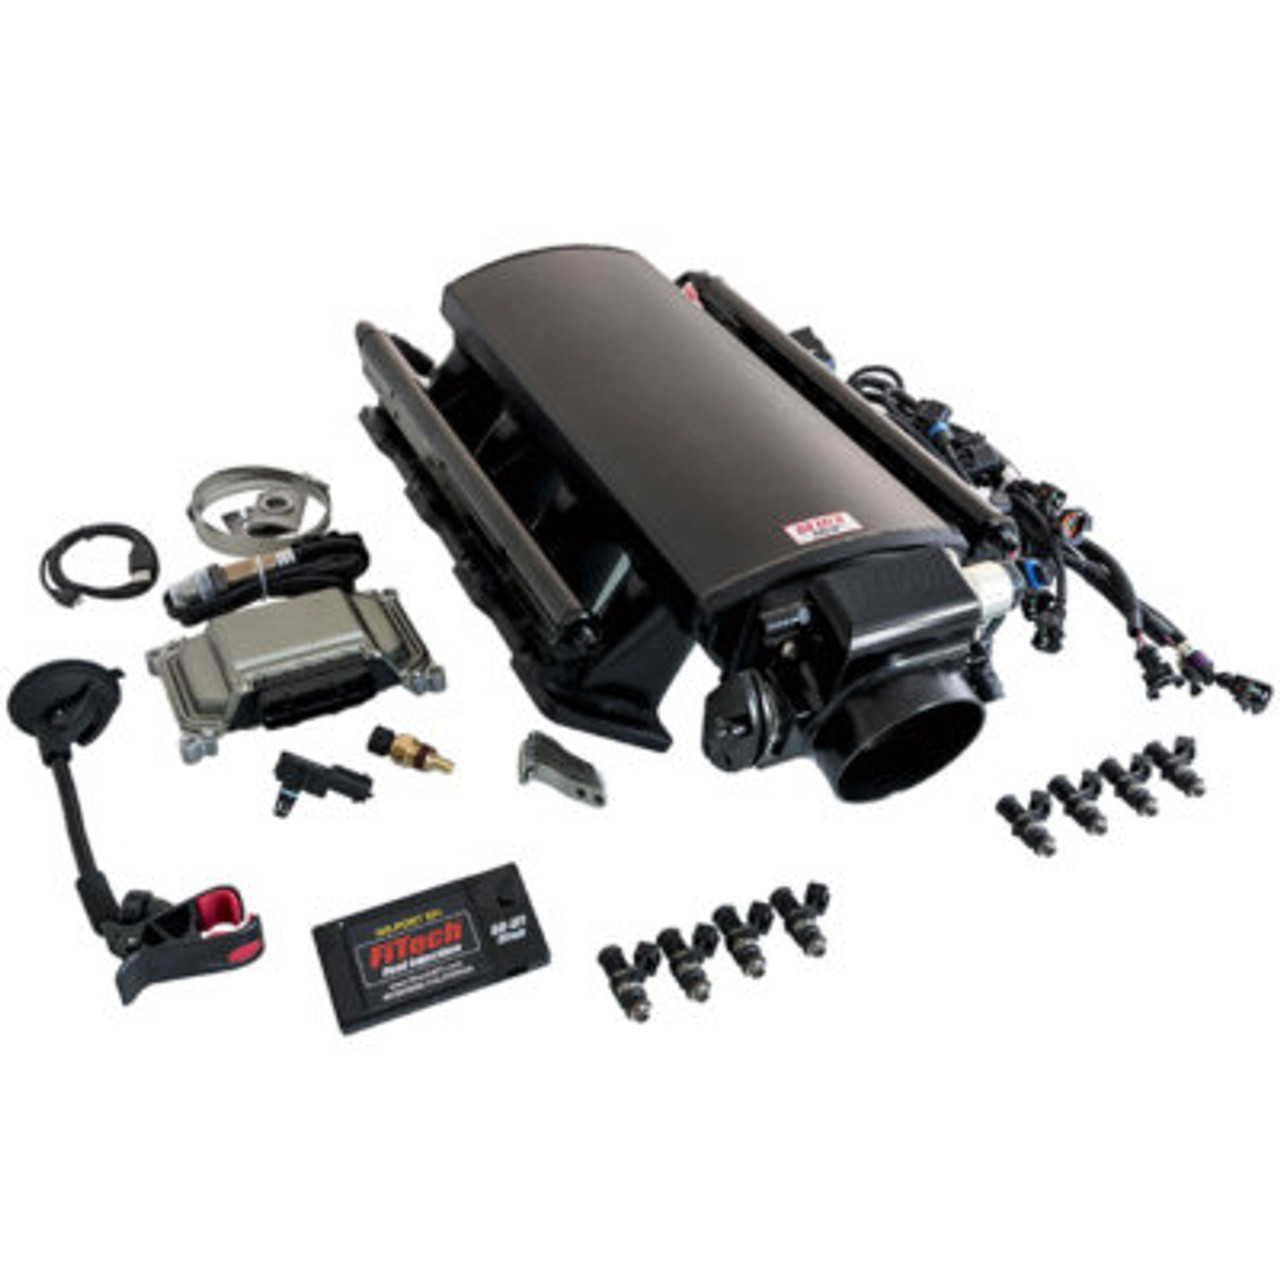 FIT70001, FITECH, ULTIMATE EFI LS CATHEDRAL PORT KIT 500 HP W/O TRANS CONTRO